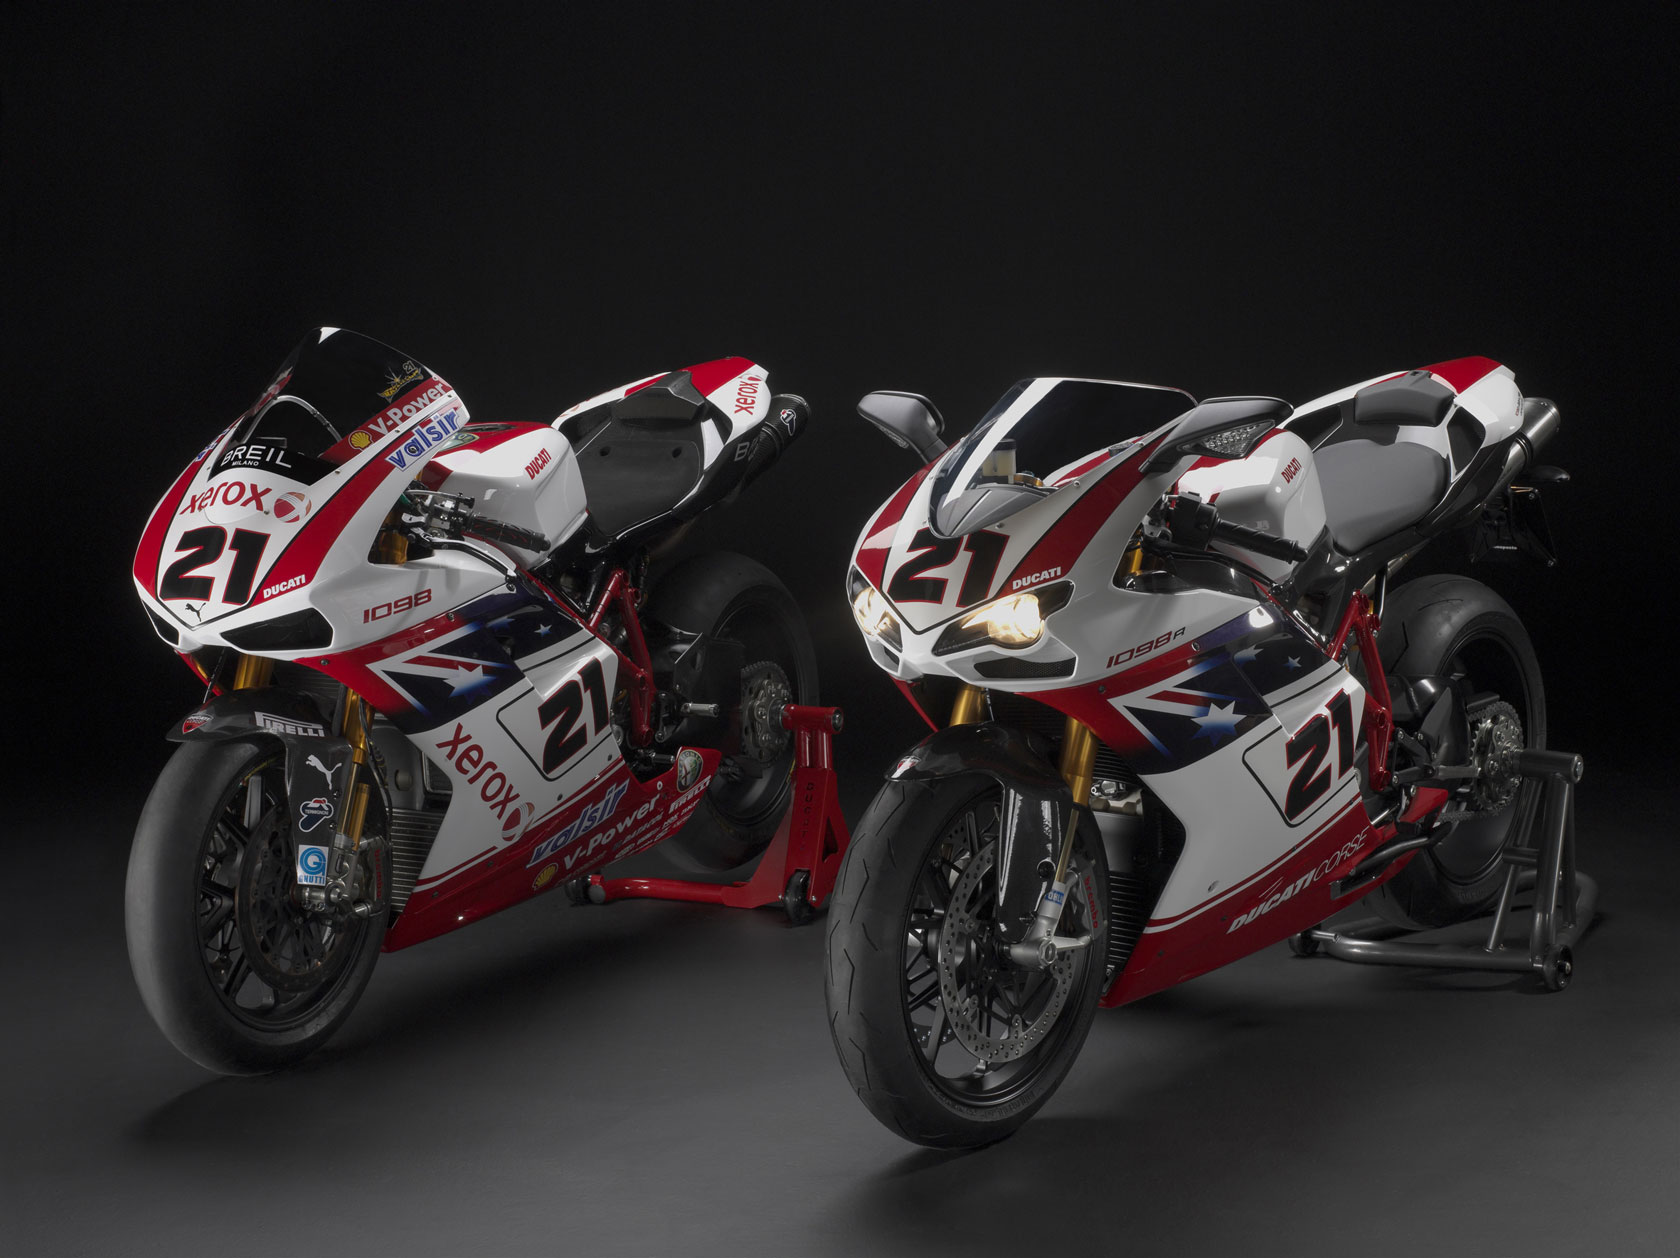 Ducati Superbike 1098 R Bayliss Limited Edition 2009 wallpapers #12434